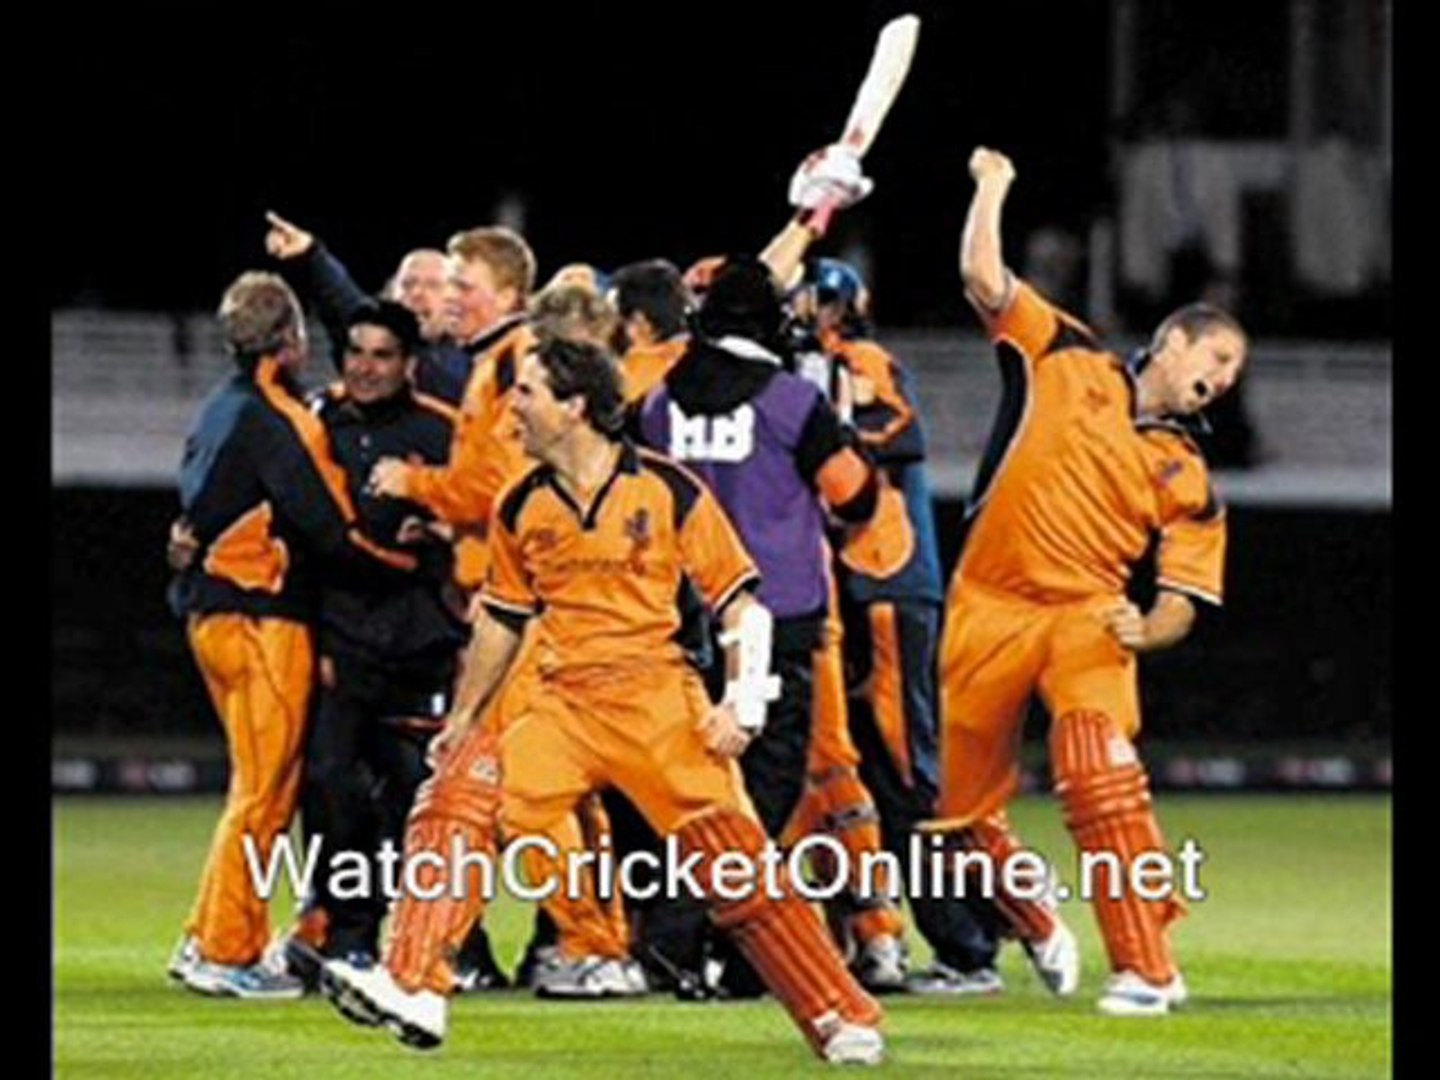 watch India vs Netherlands world cup matches 2011 live